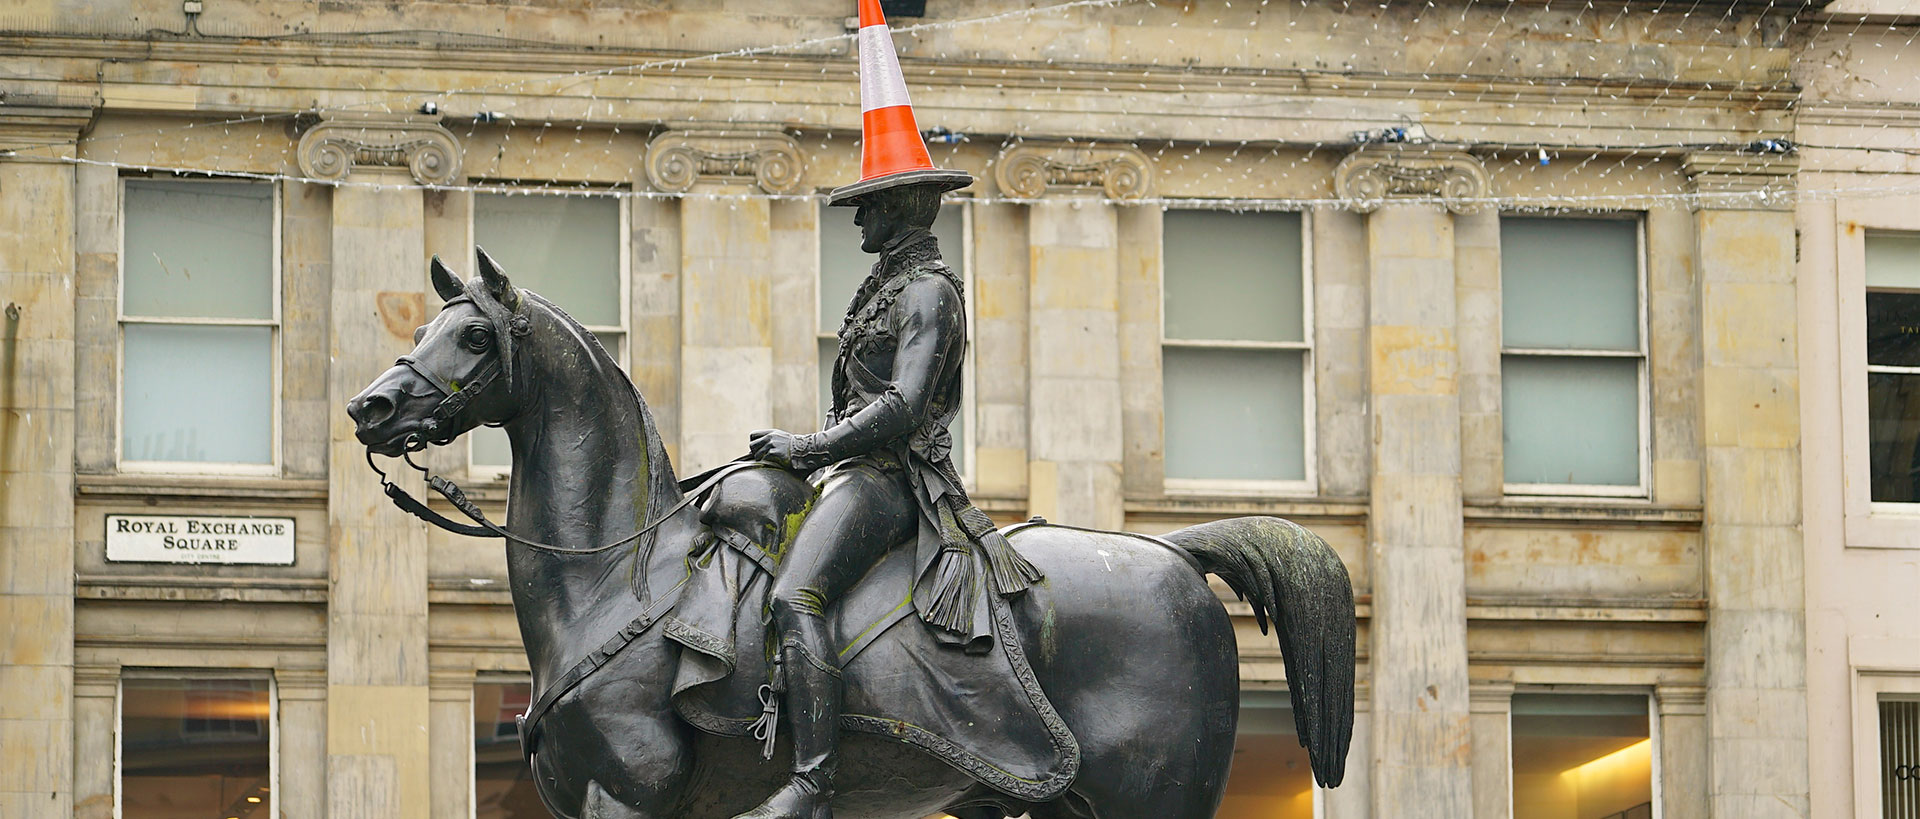 Eat Walk Glasgow: Duke of Wellington